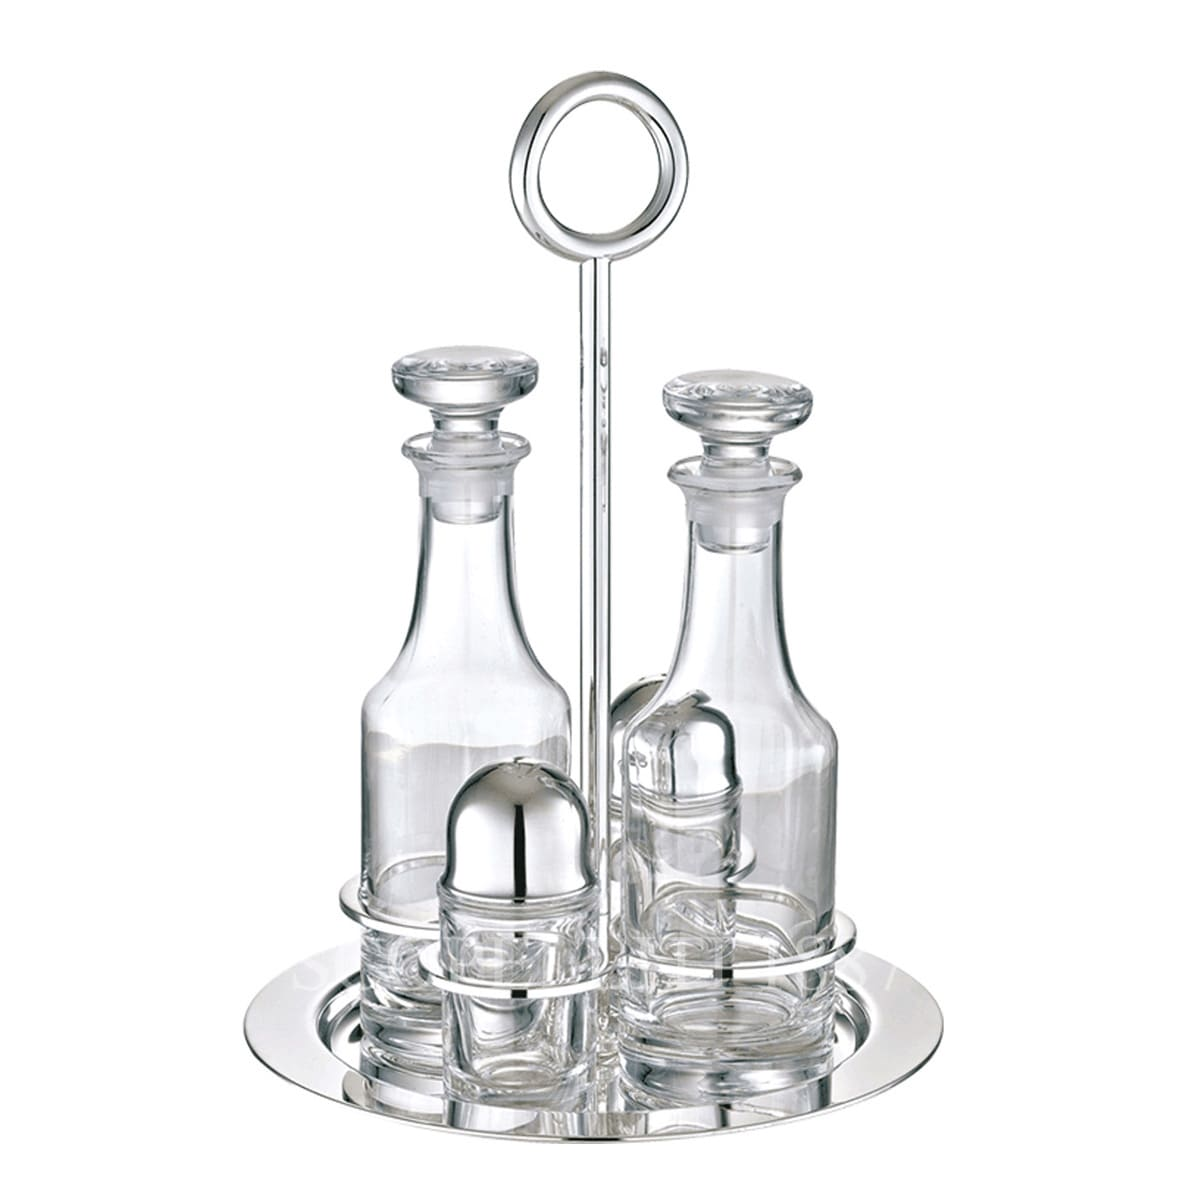 Christofle Vertigo Silver Plated Oil and Vinegar Cruet Set with Stand